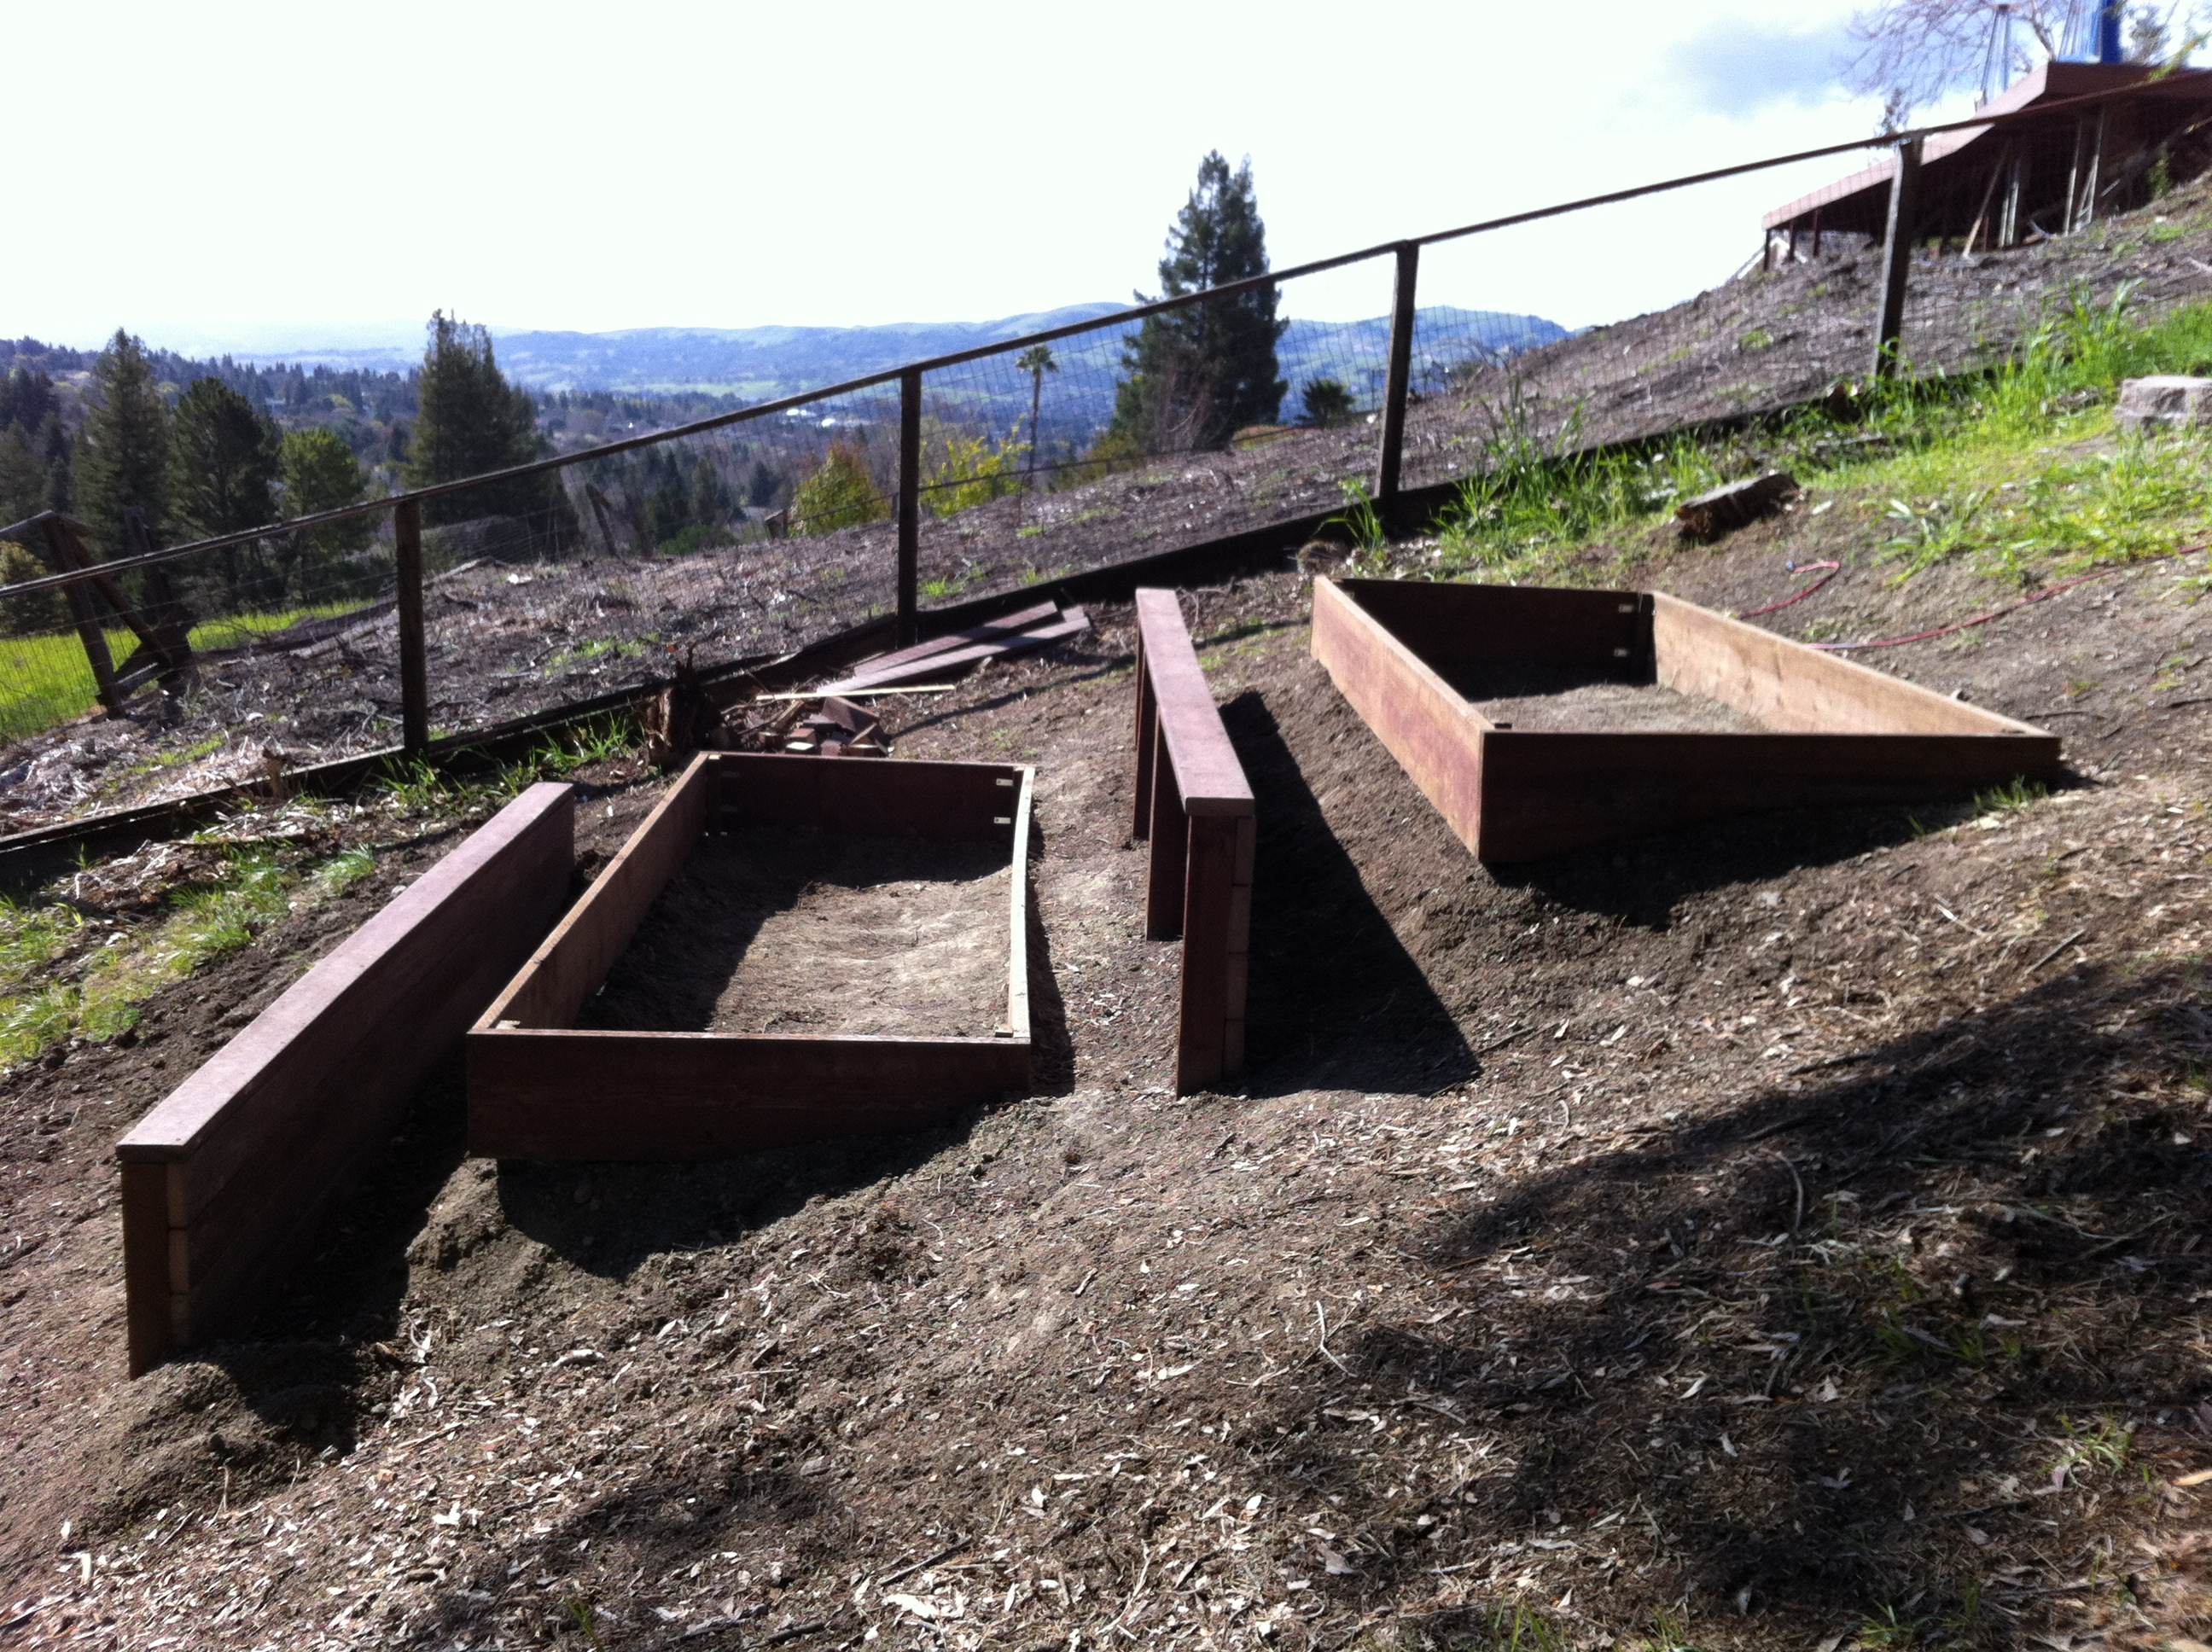 My backyard farm truthology for How to build a house on a steep slope